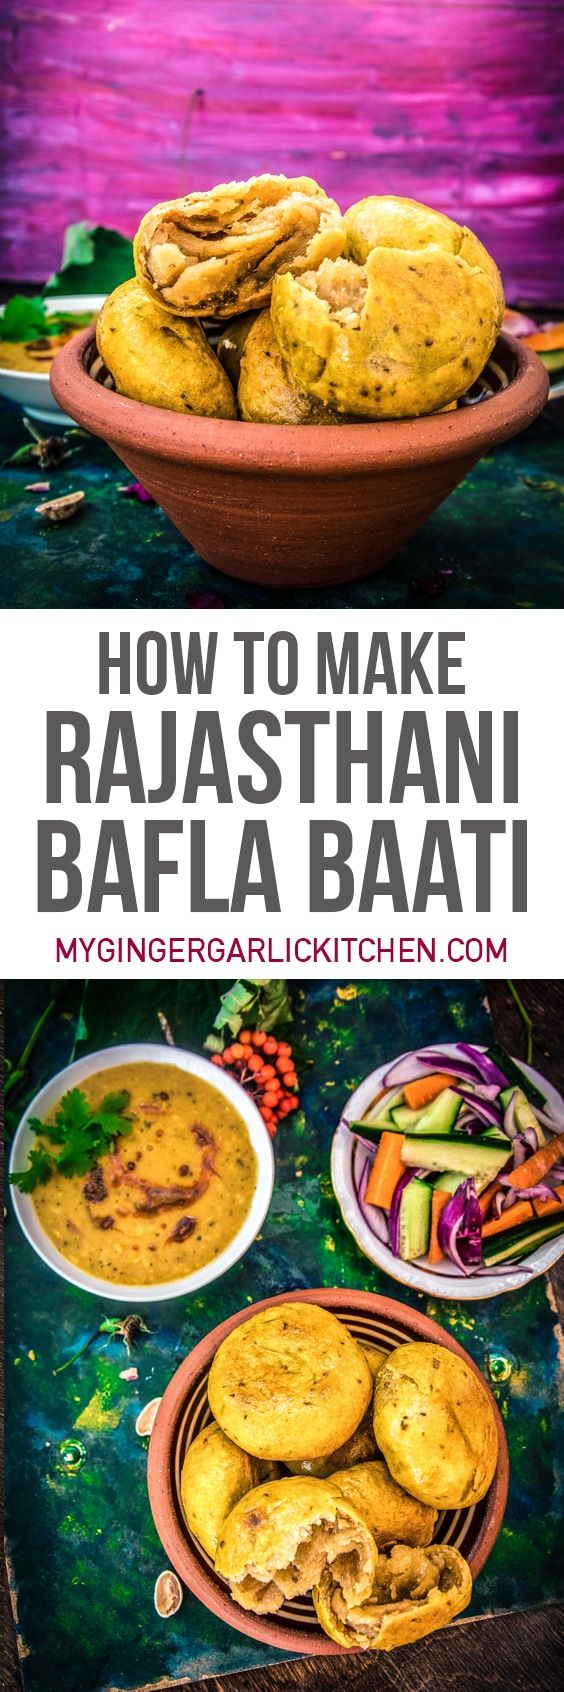 Dal Bafla or Bafla Bati is a famous bread of western India. Bafla is a popular dish of Rajasthan and Madhya Pradesh. From: mygingergarlickitchen.com #Rajasthanifood #Bati #Breads #vegetarian #Baflabaati #videorecipe #Desi #Boiled